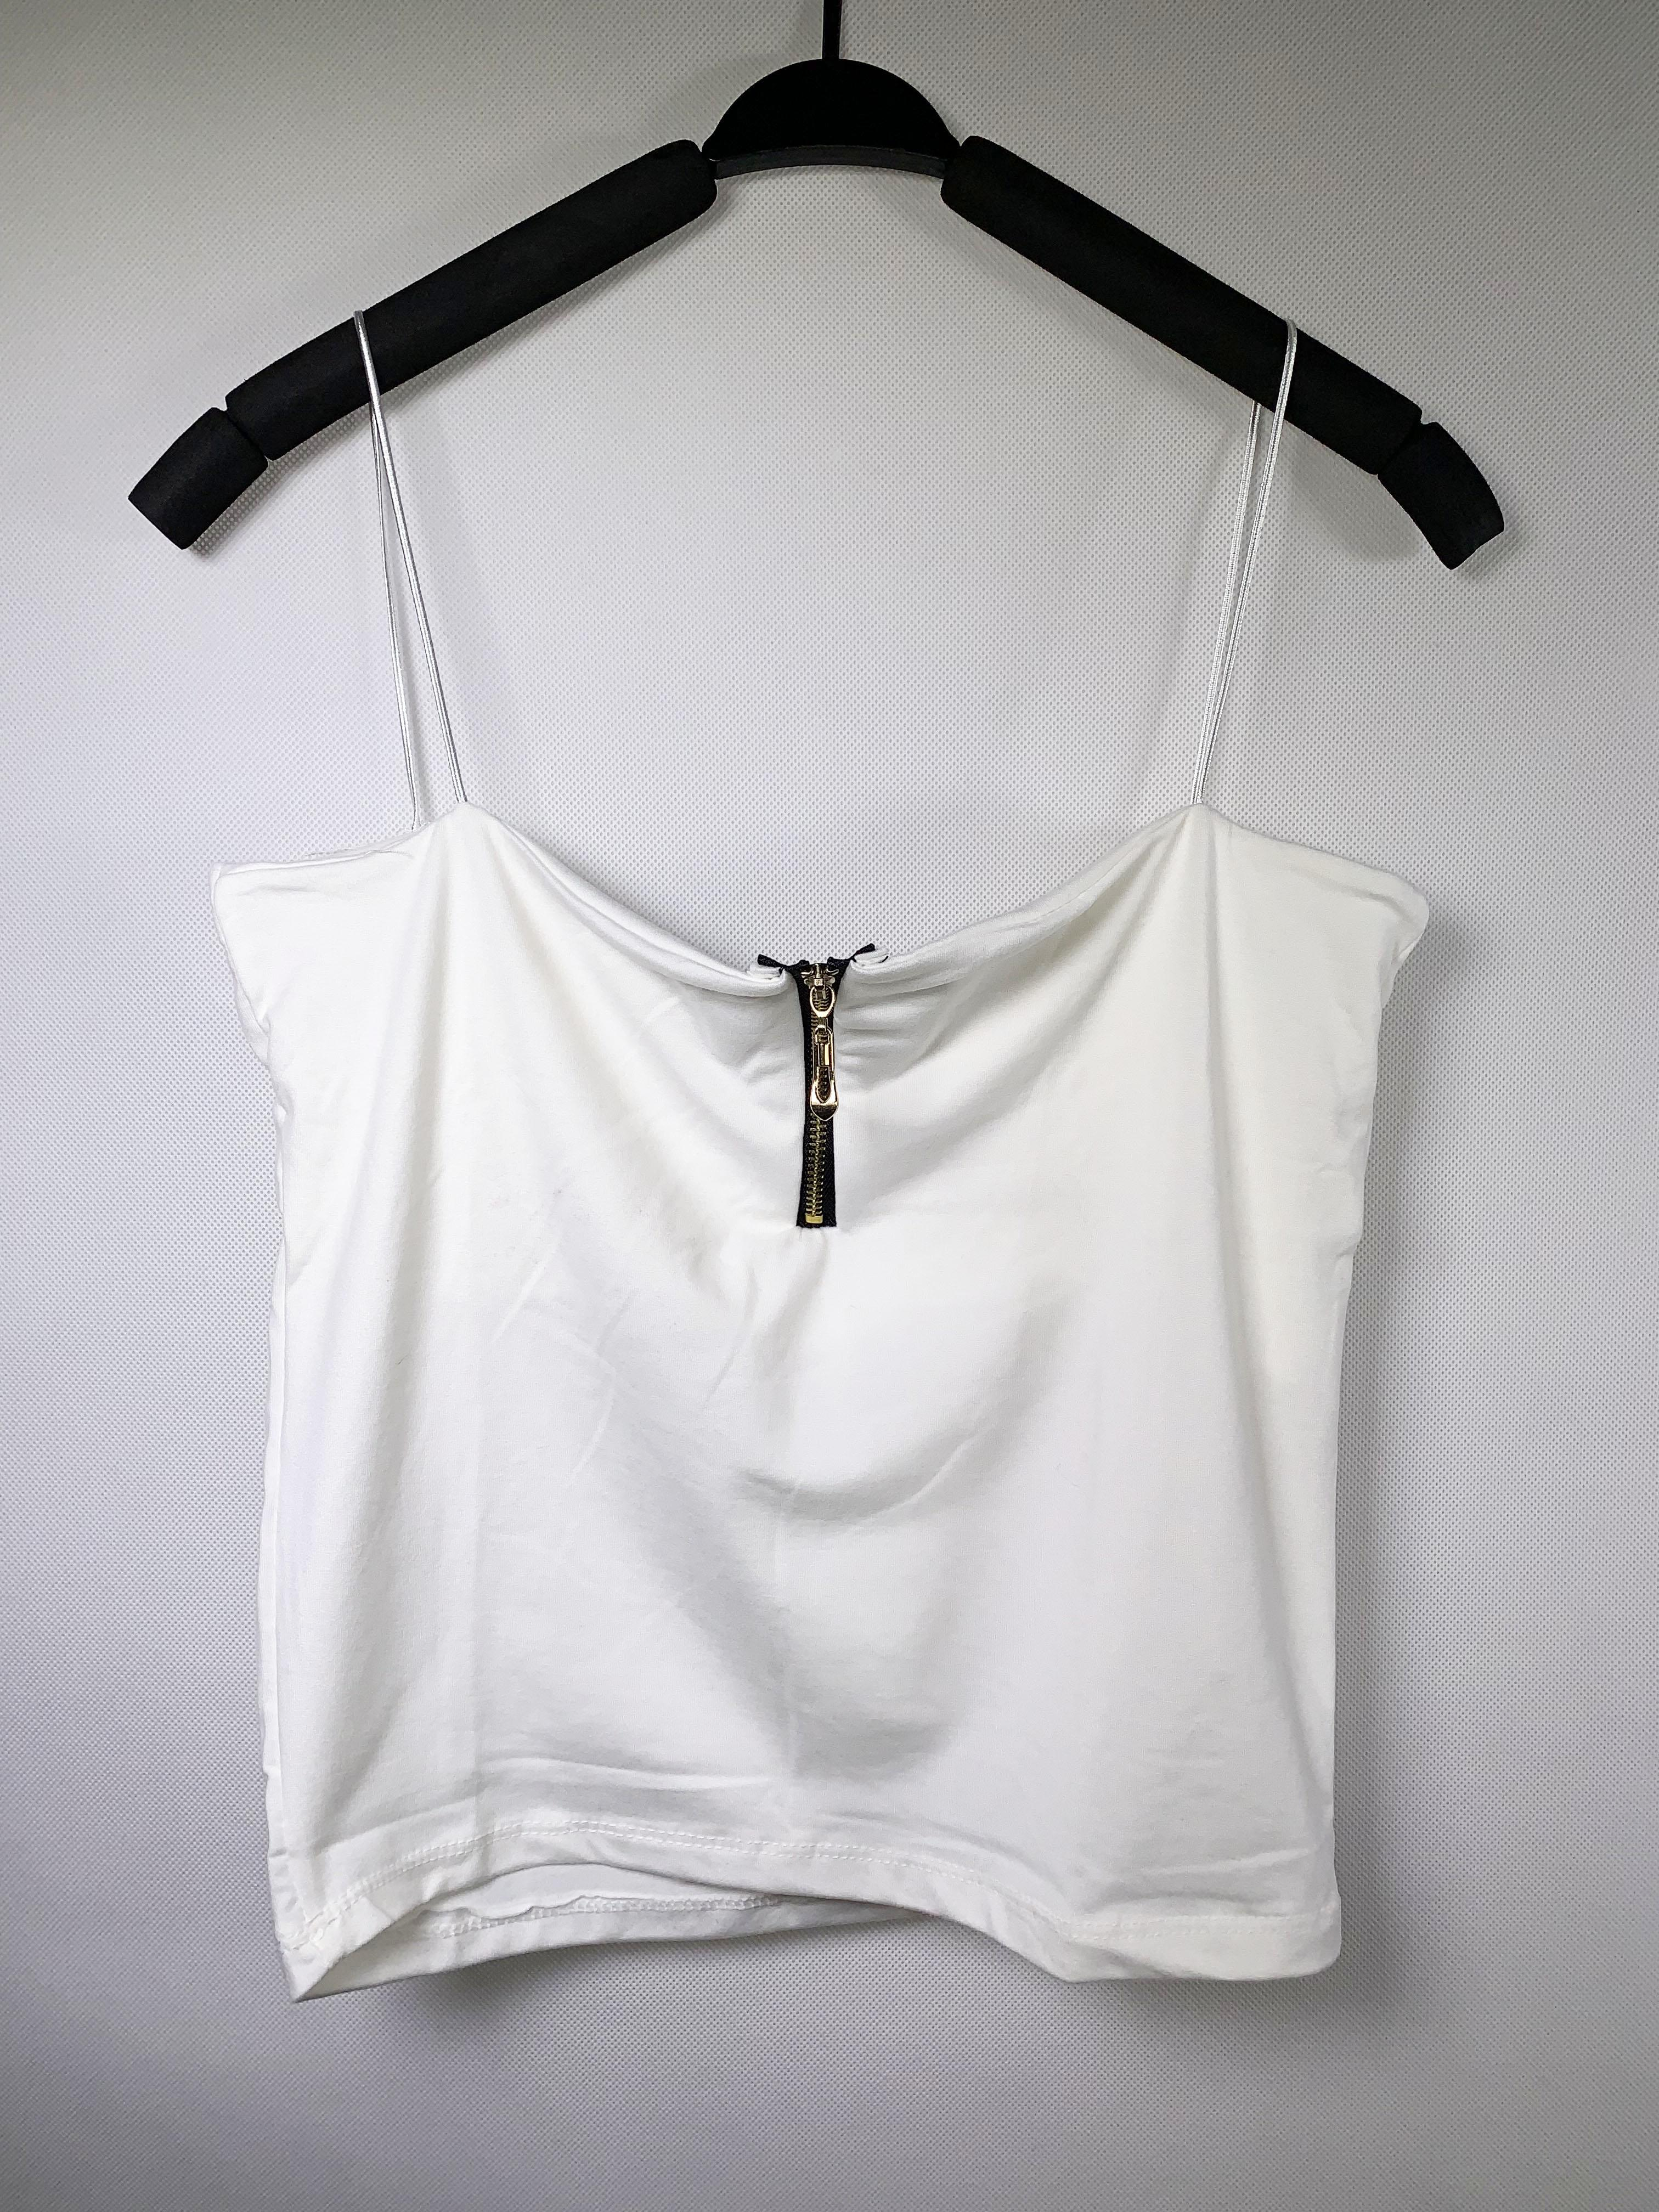 790e98d6bccffa Tank Tops for Women for sale - Camisole for Women online brands ...